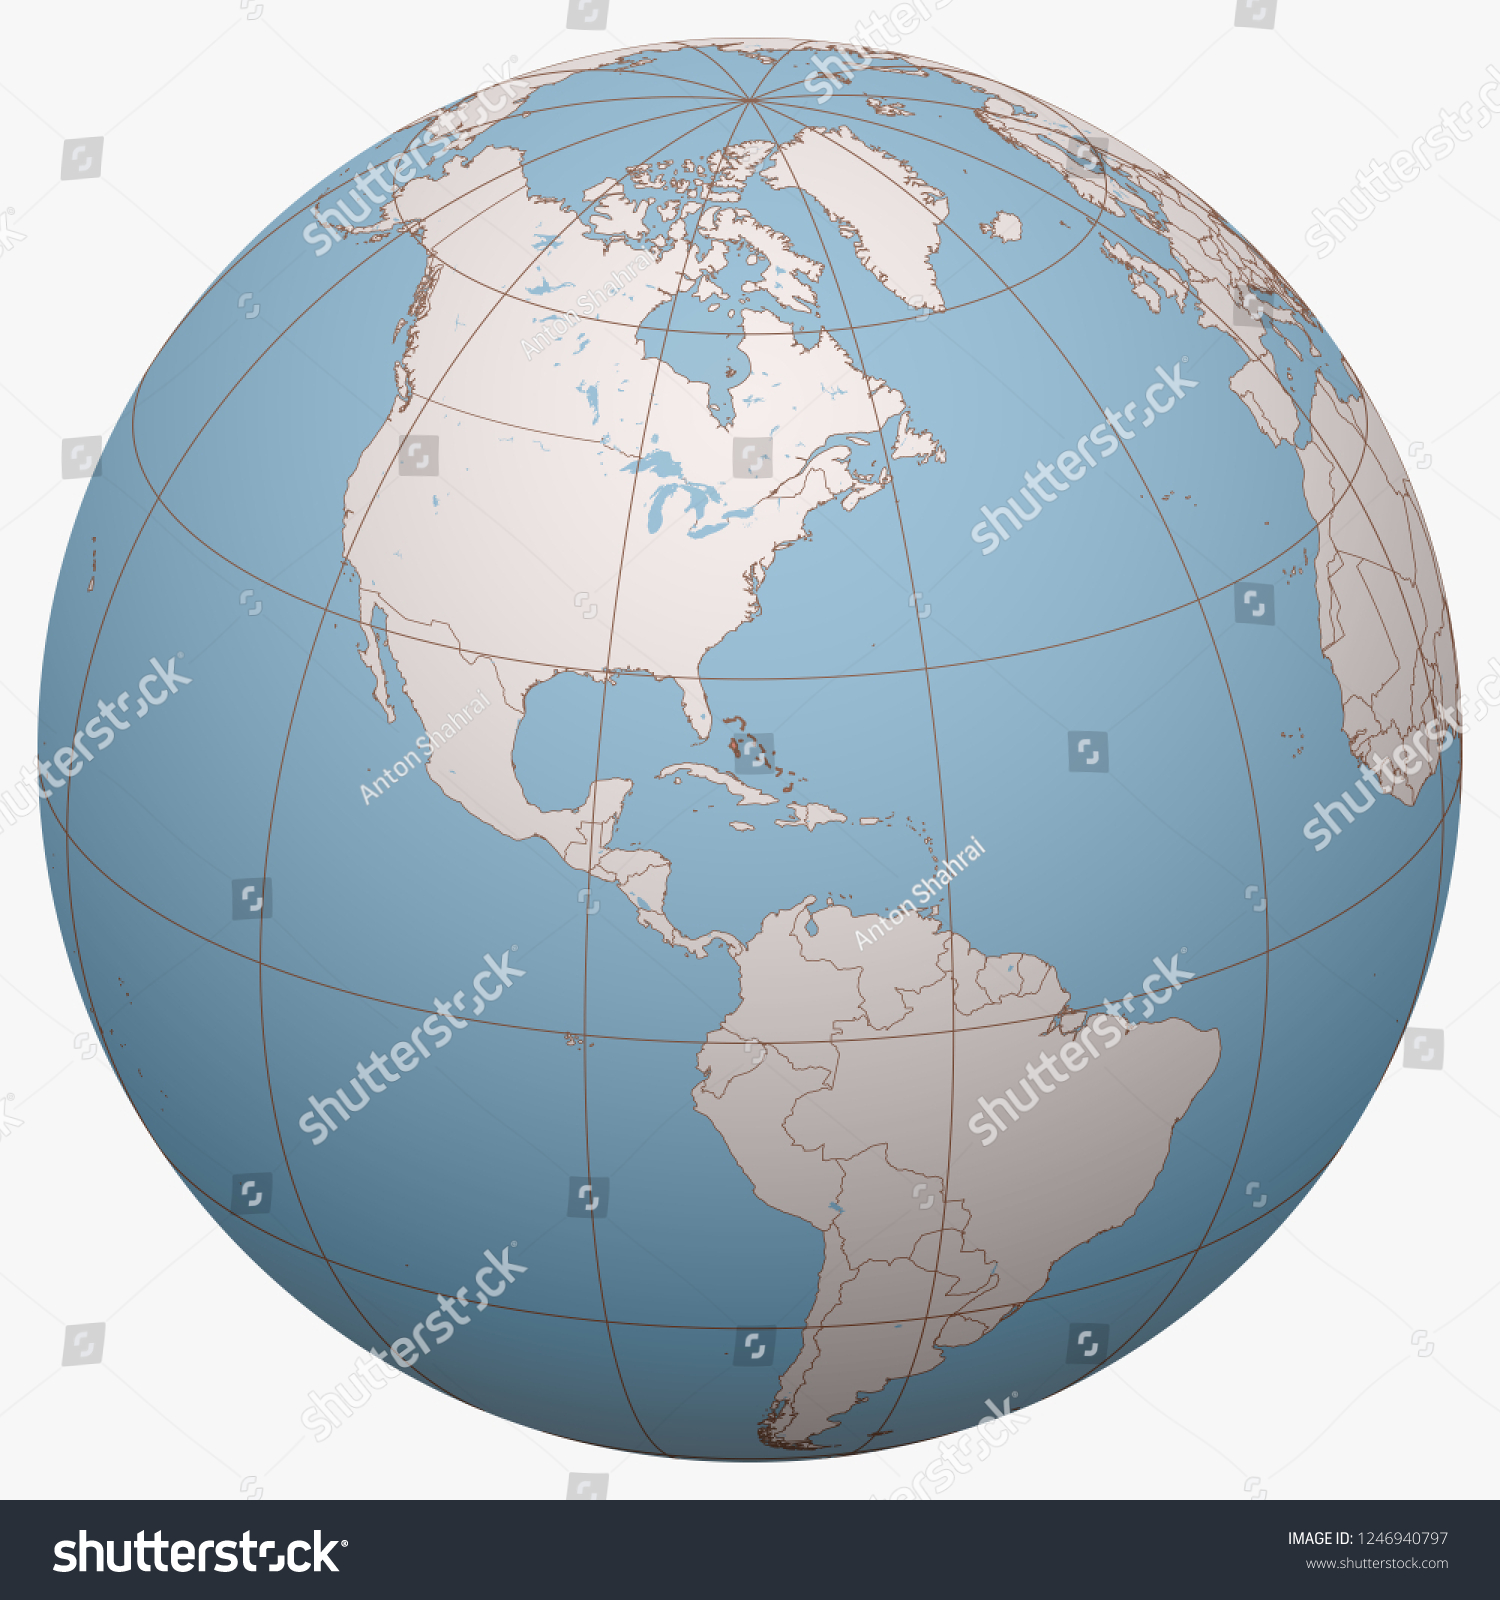 Picture of: Bahamas On Globe Earth Hemisphere Centered Stock Vector Royalty Free 1246940797